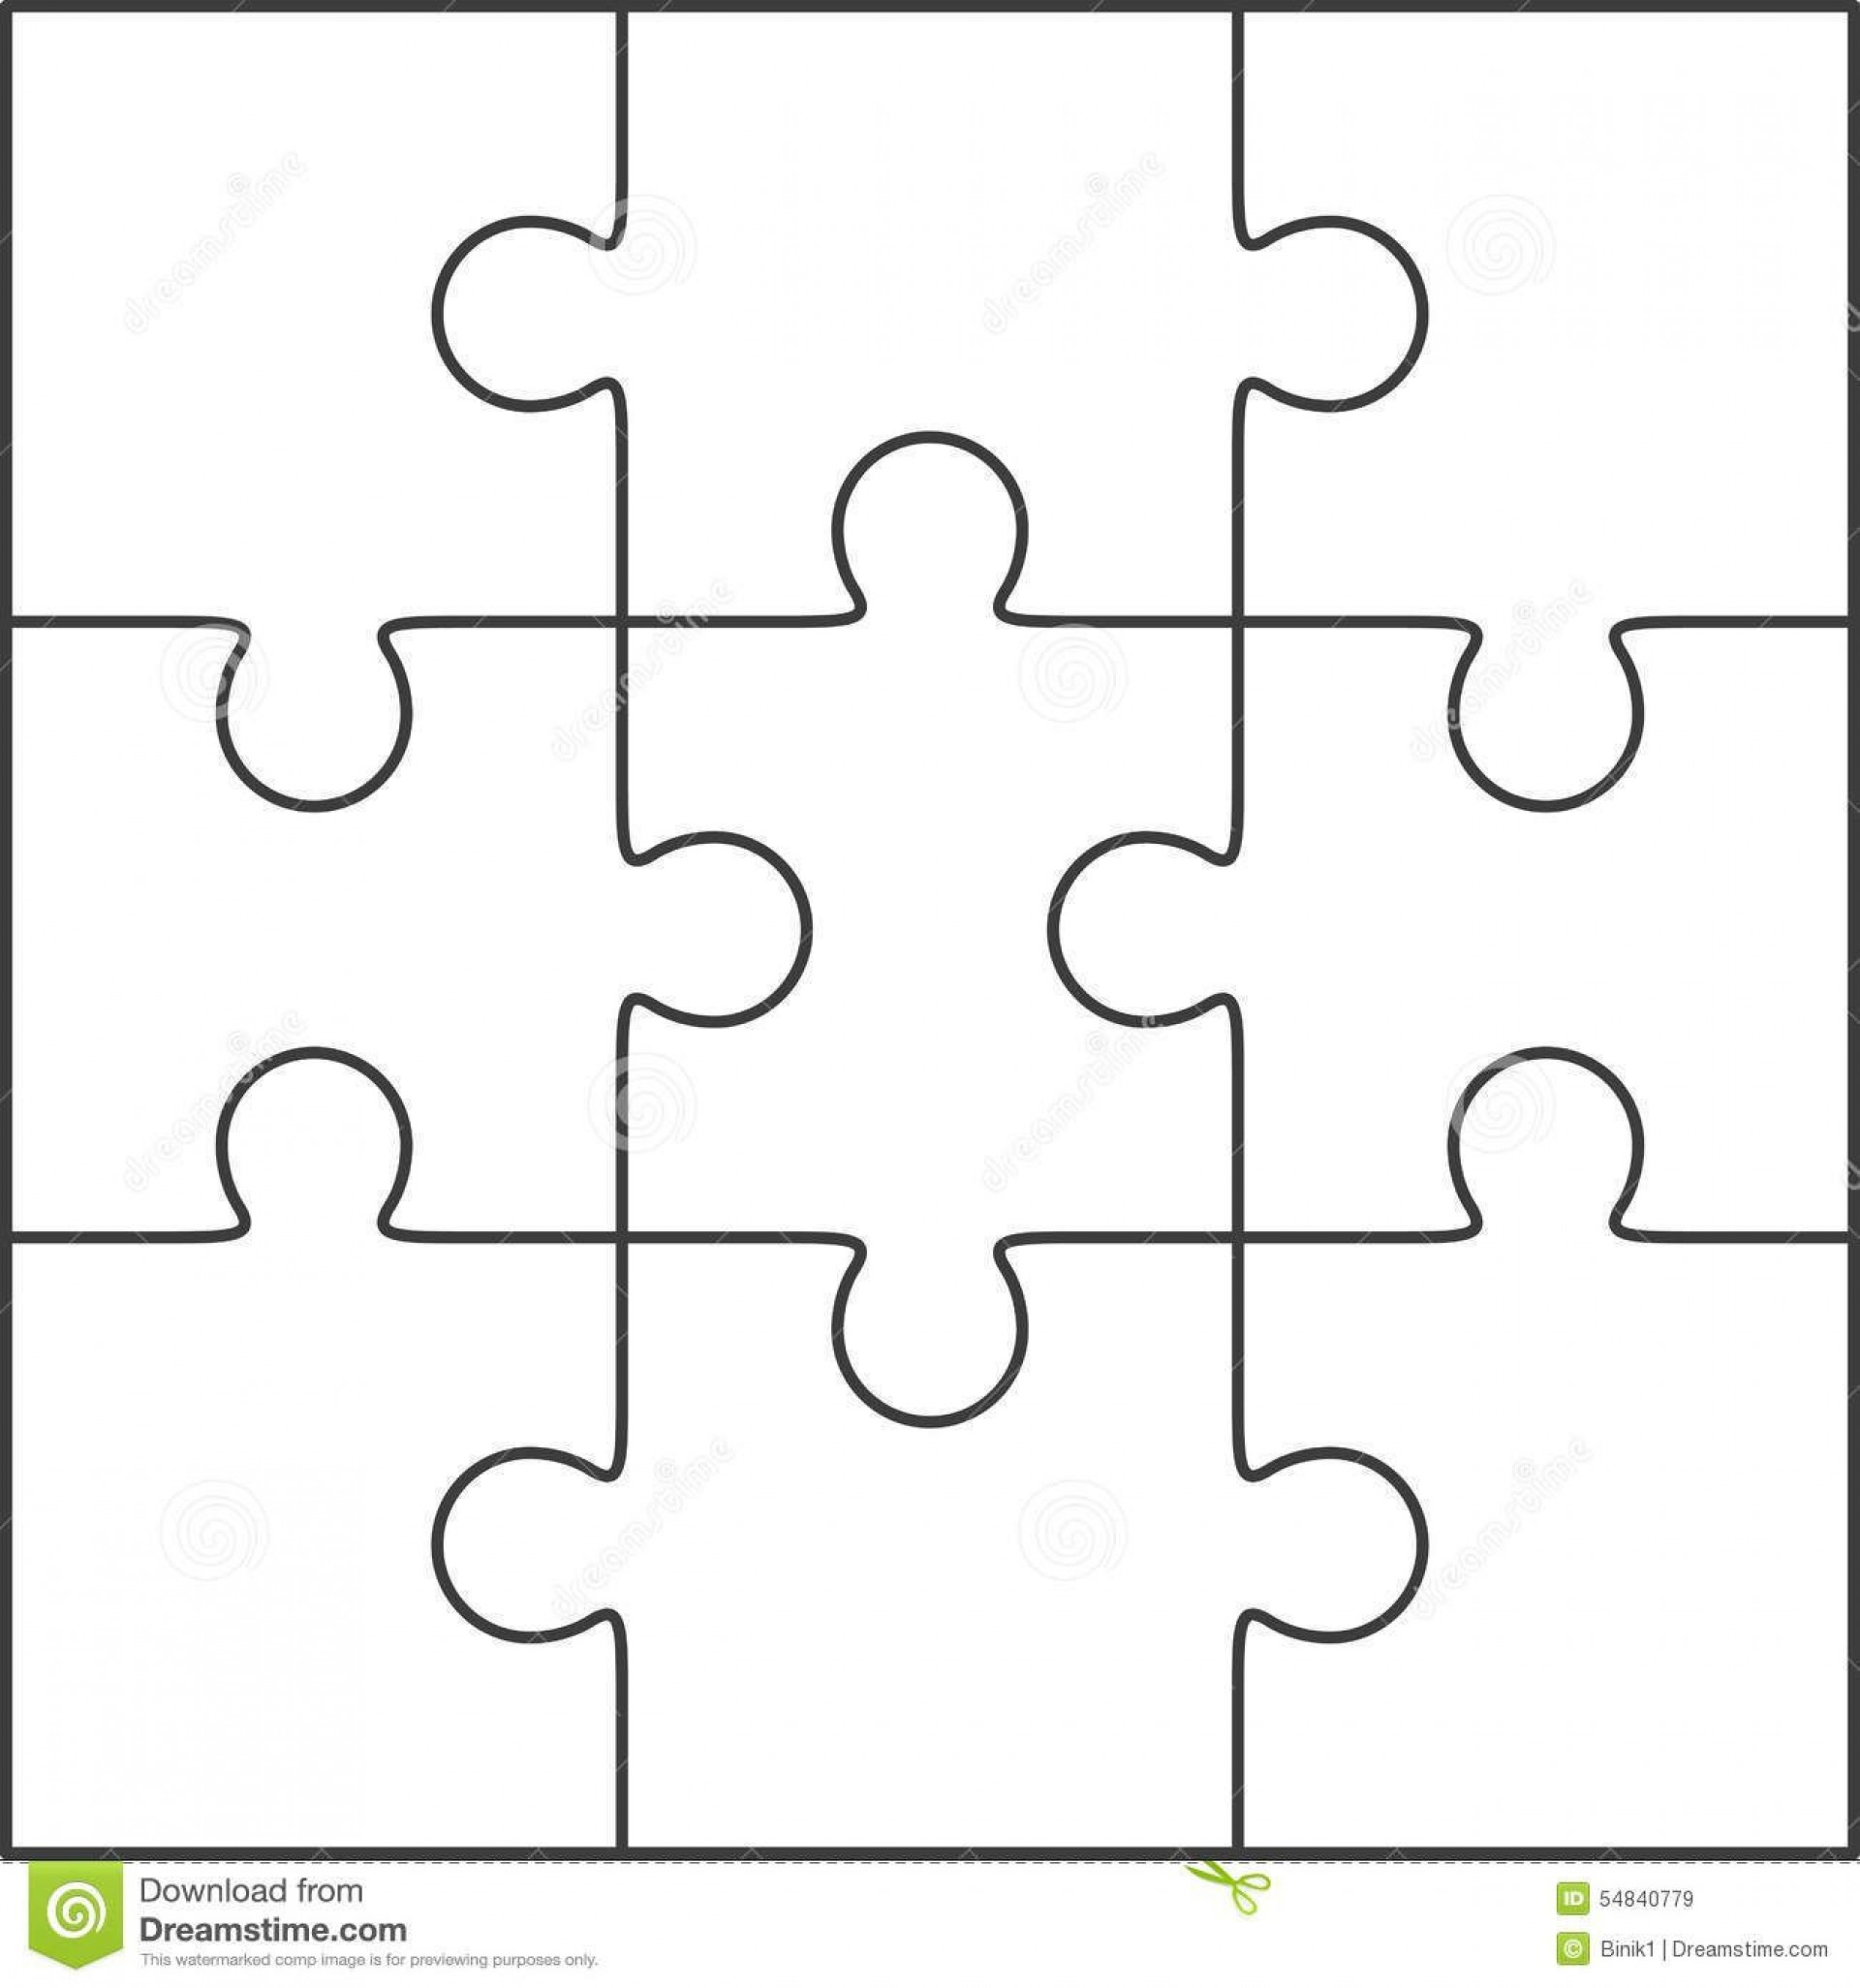 005 Marvelou Jig Saw Puzzle Template Photo  Printable Blank Jigsaw Vector Free Png1920